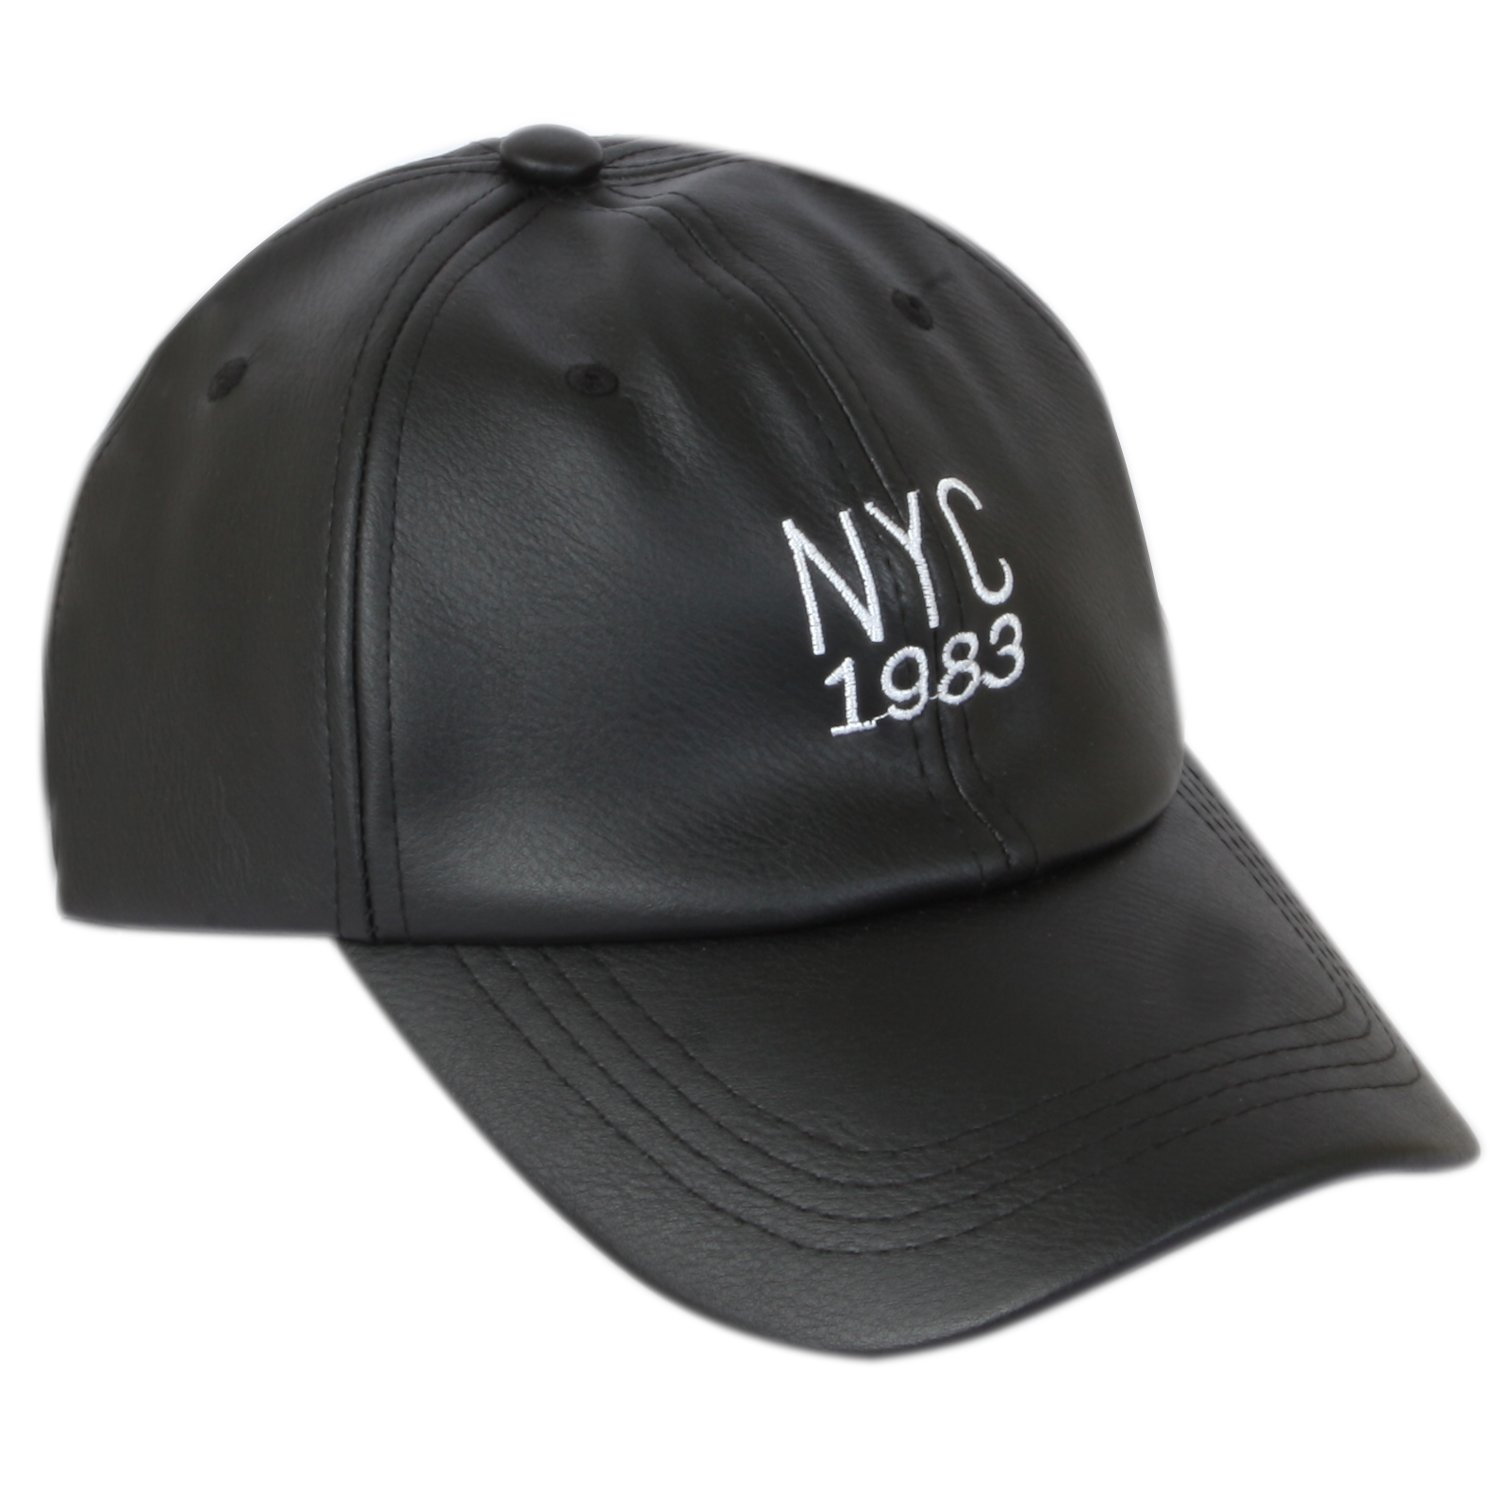 85a3b11ad03 ILU NY Men s Faux Leather Baseball Cap Black Freesize  Amazon.in  Clothing    Accessories